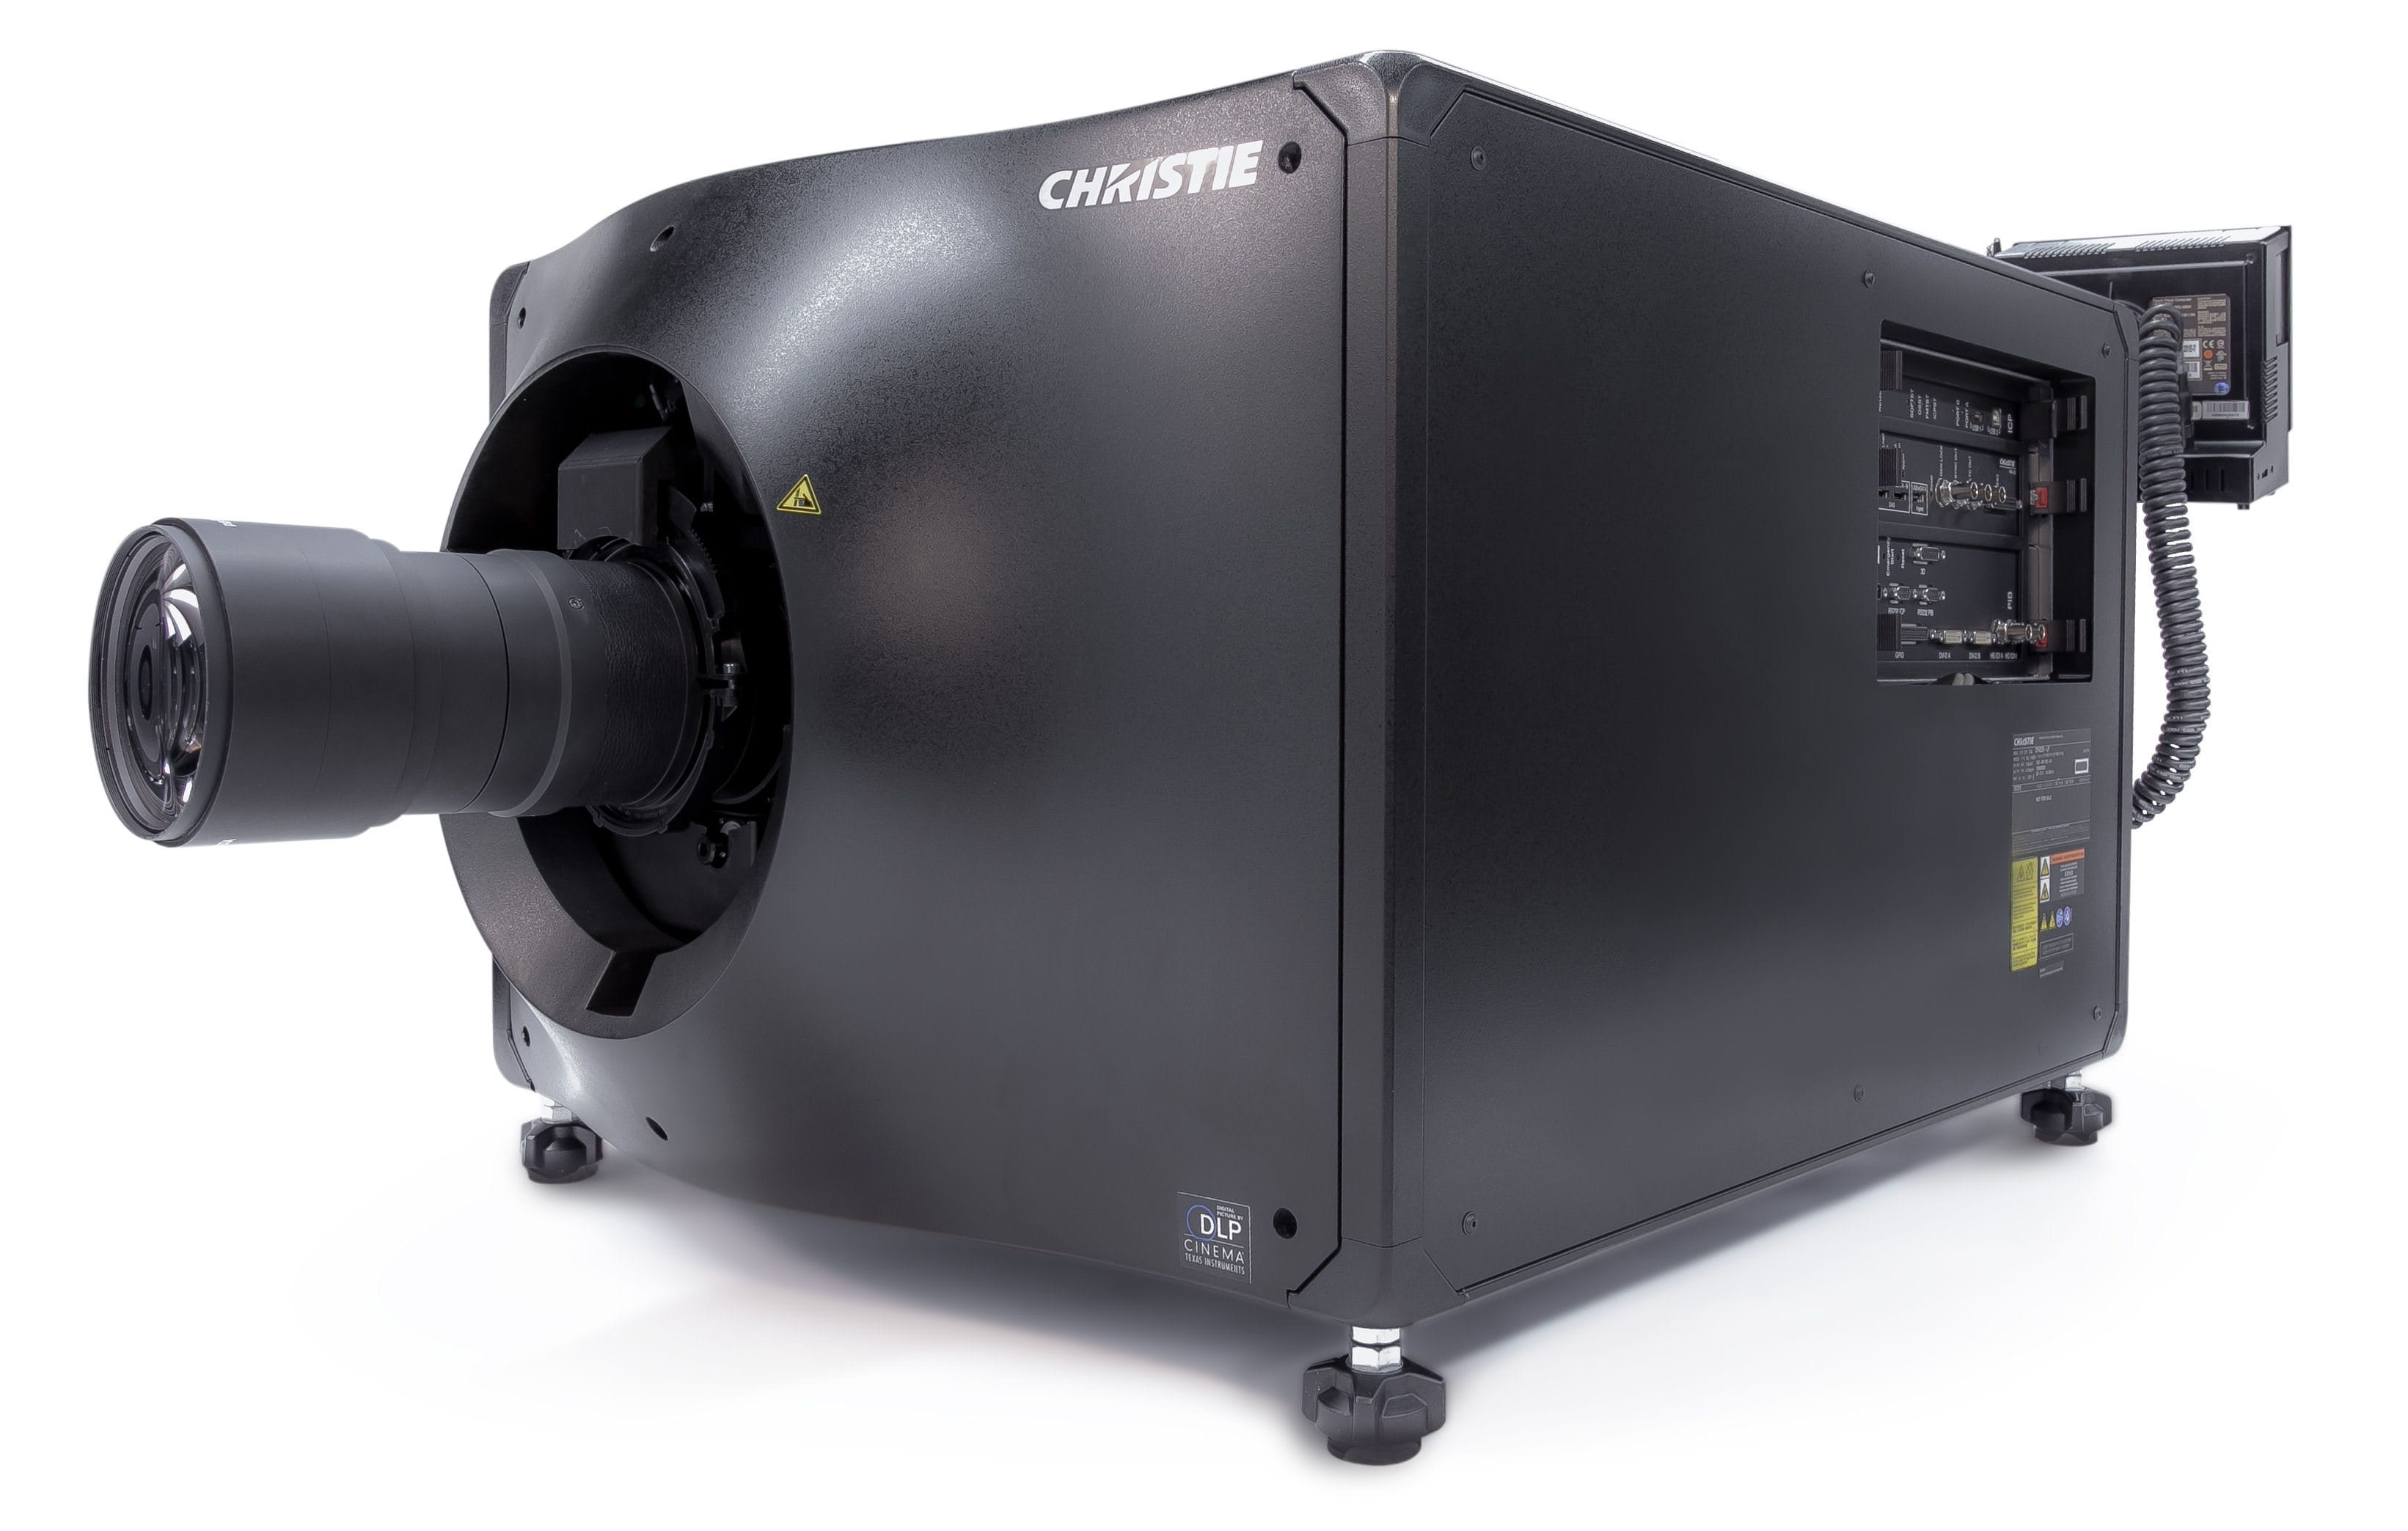 Christie Projectors At Mjr Universal Grand Cinema 16 Delivers On Summer Blockbuster Season Celluloid Junkie Mjr digital cinemas is committed to consistently providing superior customer service and the ultimate presentation in a clean, comfortable. mjr universal grand cinema 16 delivers